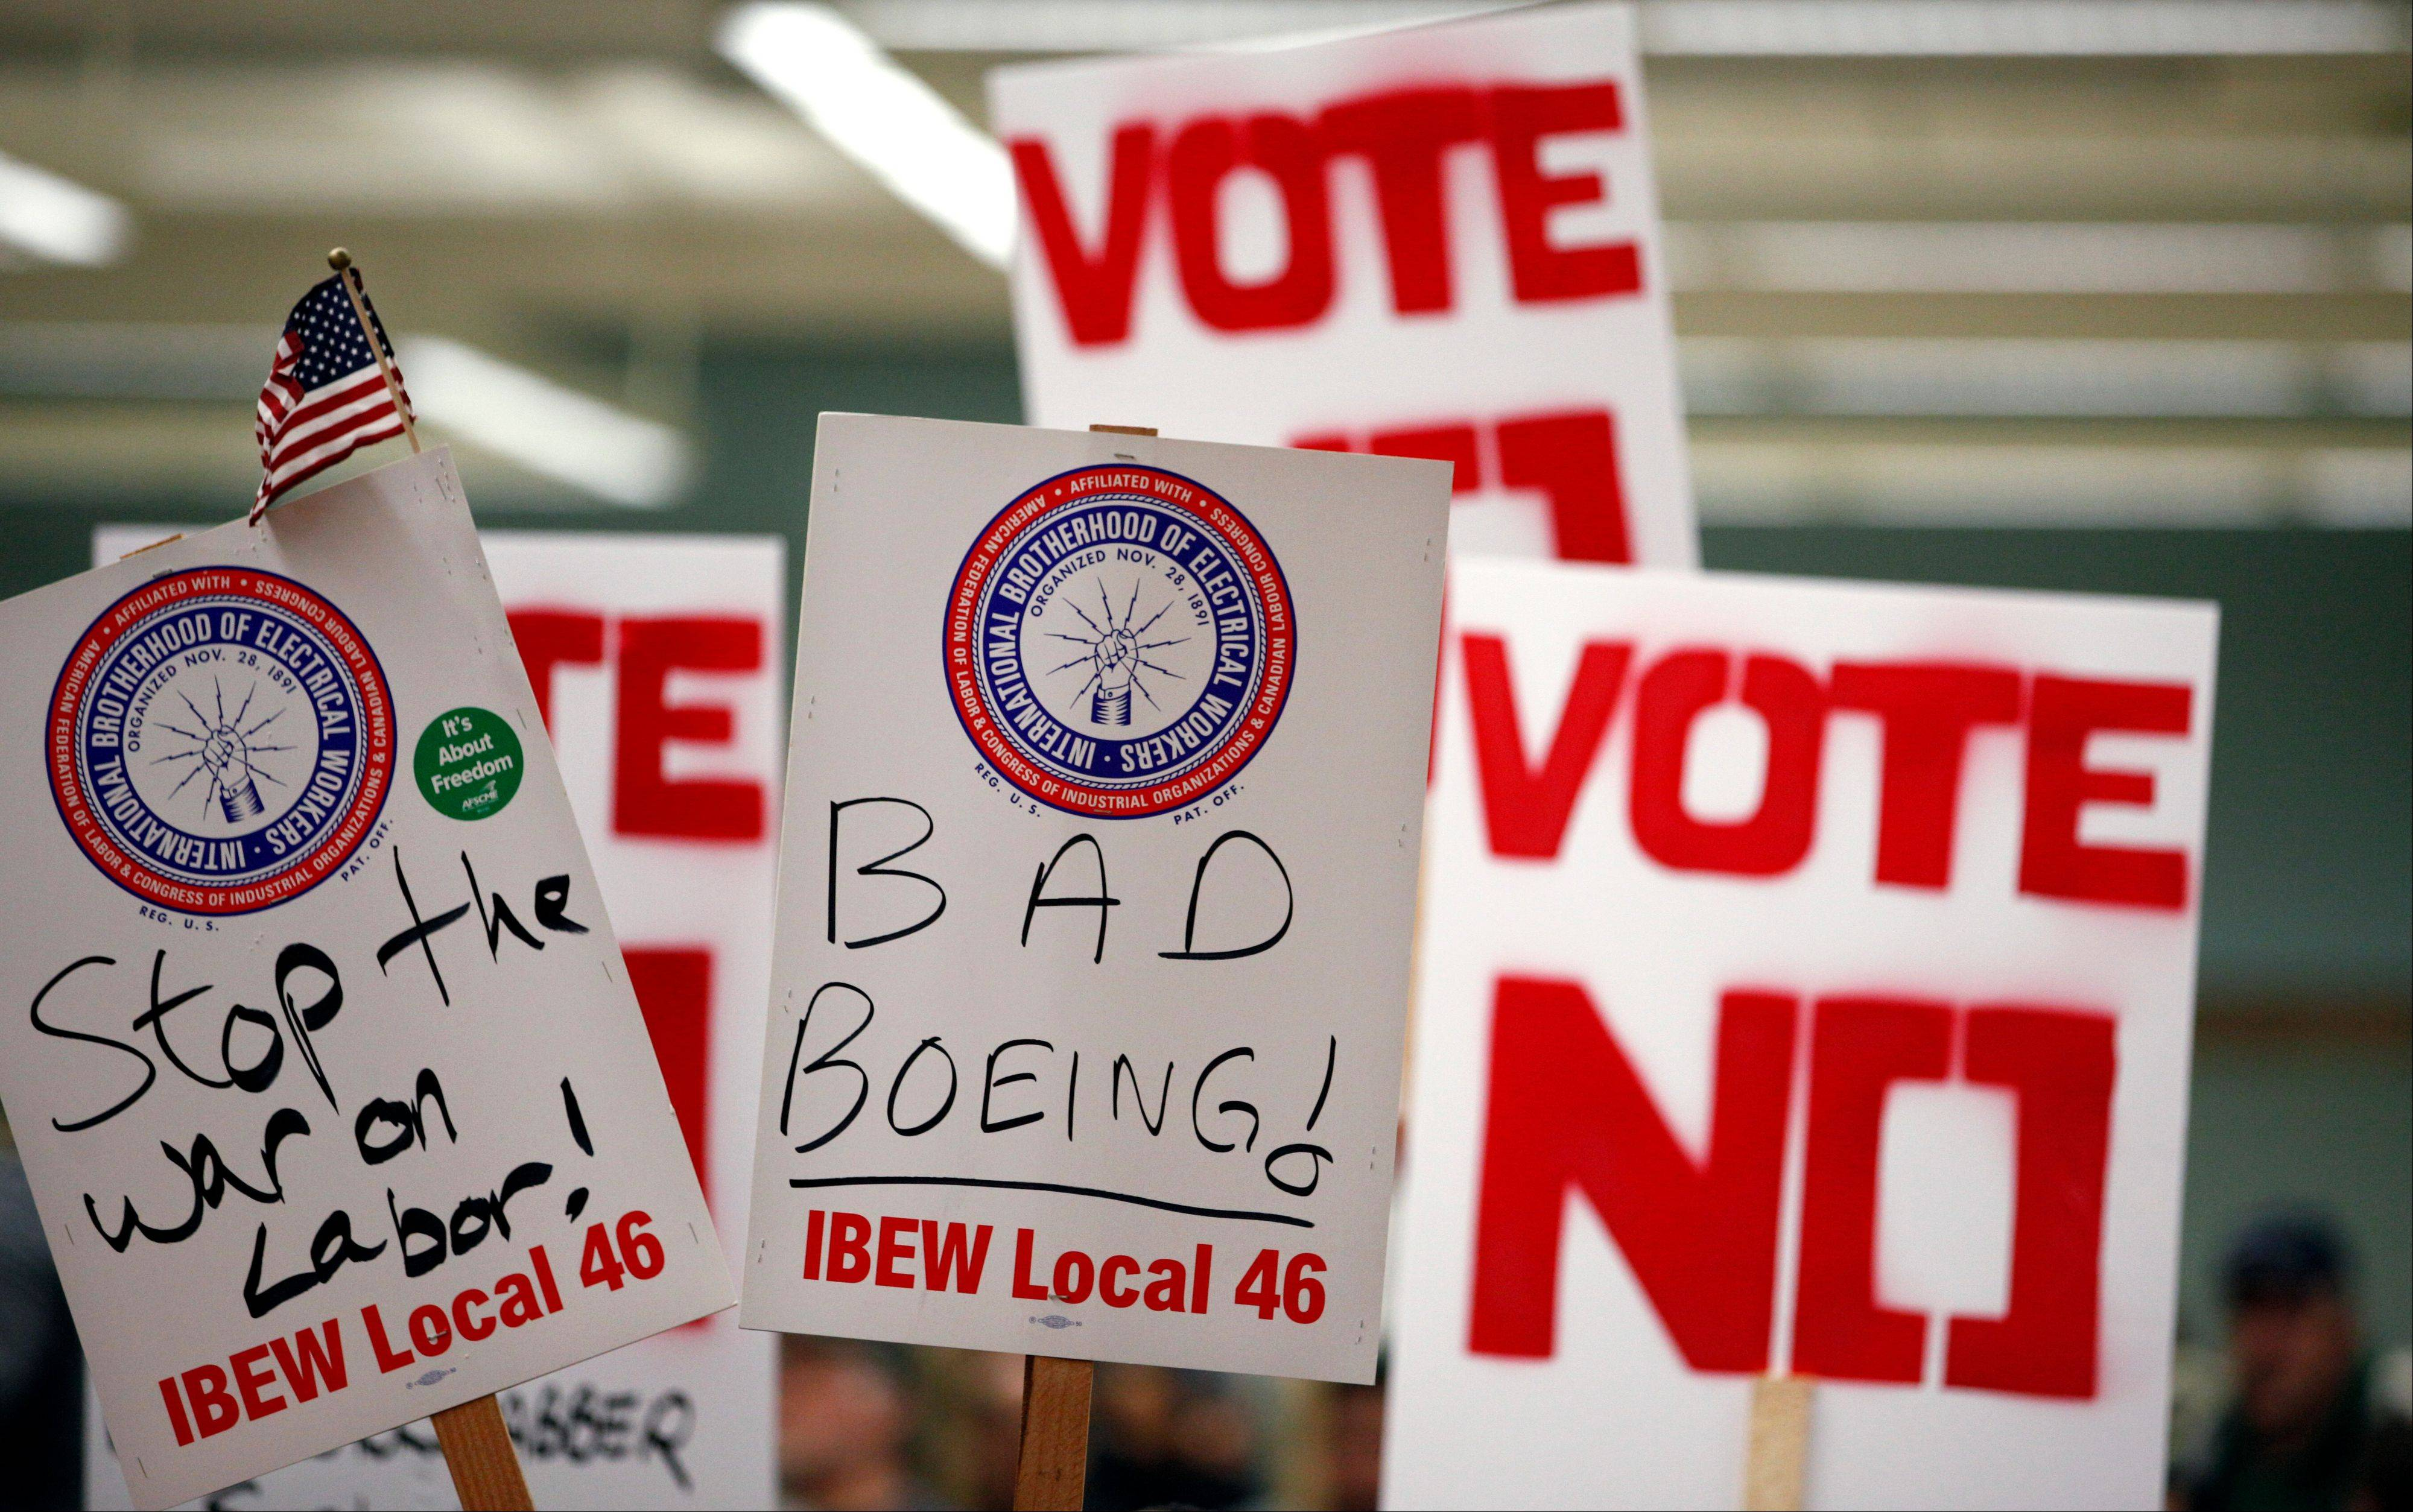 Signs urging a no vote are held up at a rally asking members to vote against a proposed contract Thursdayin Seattle.